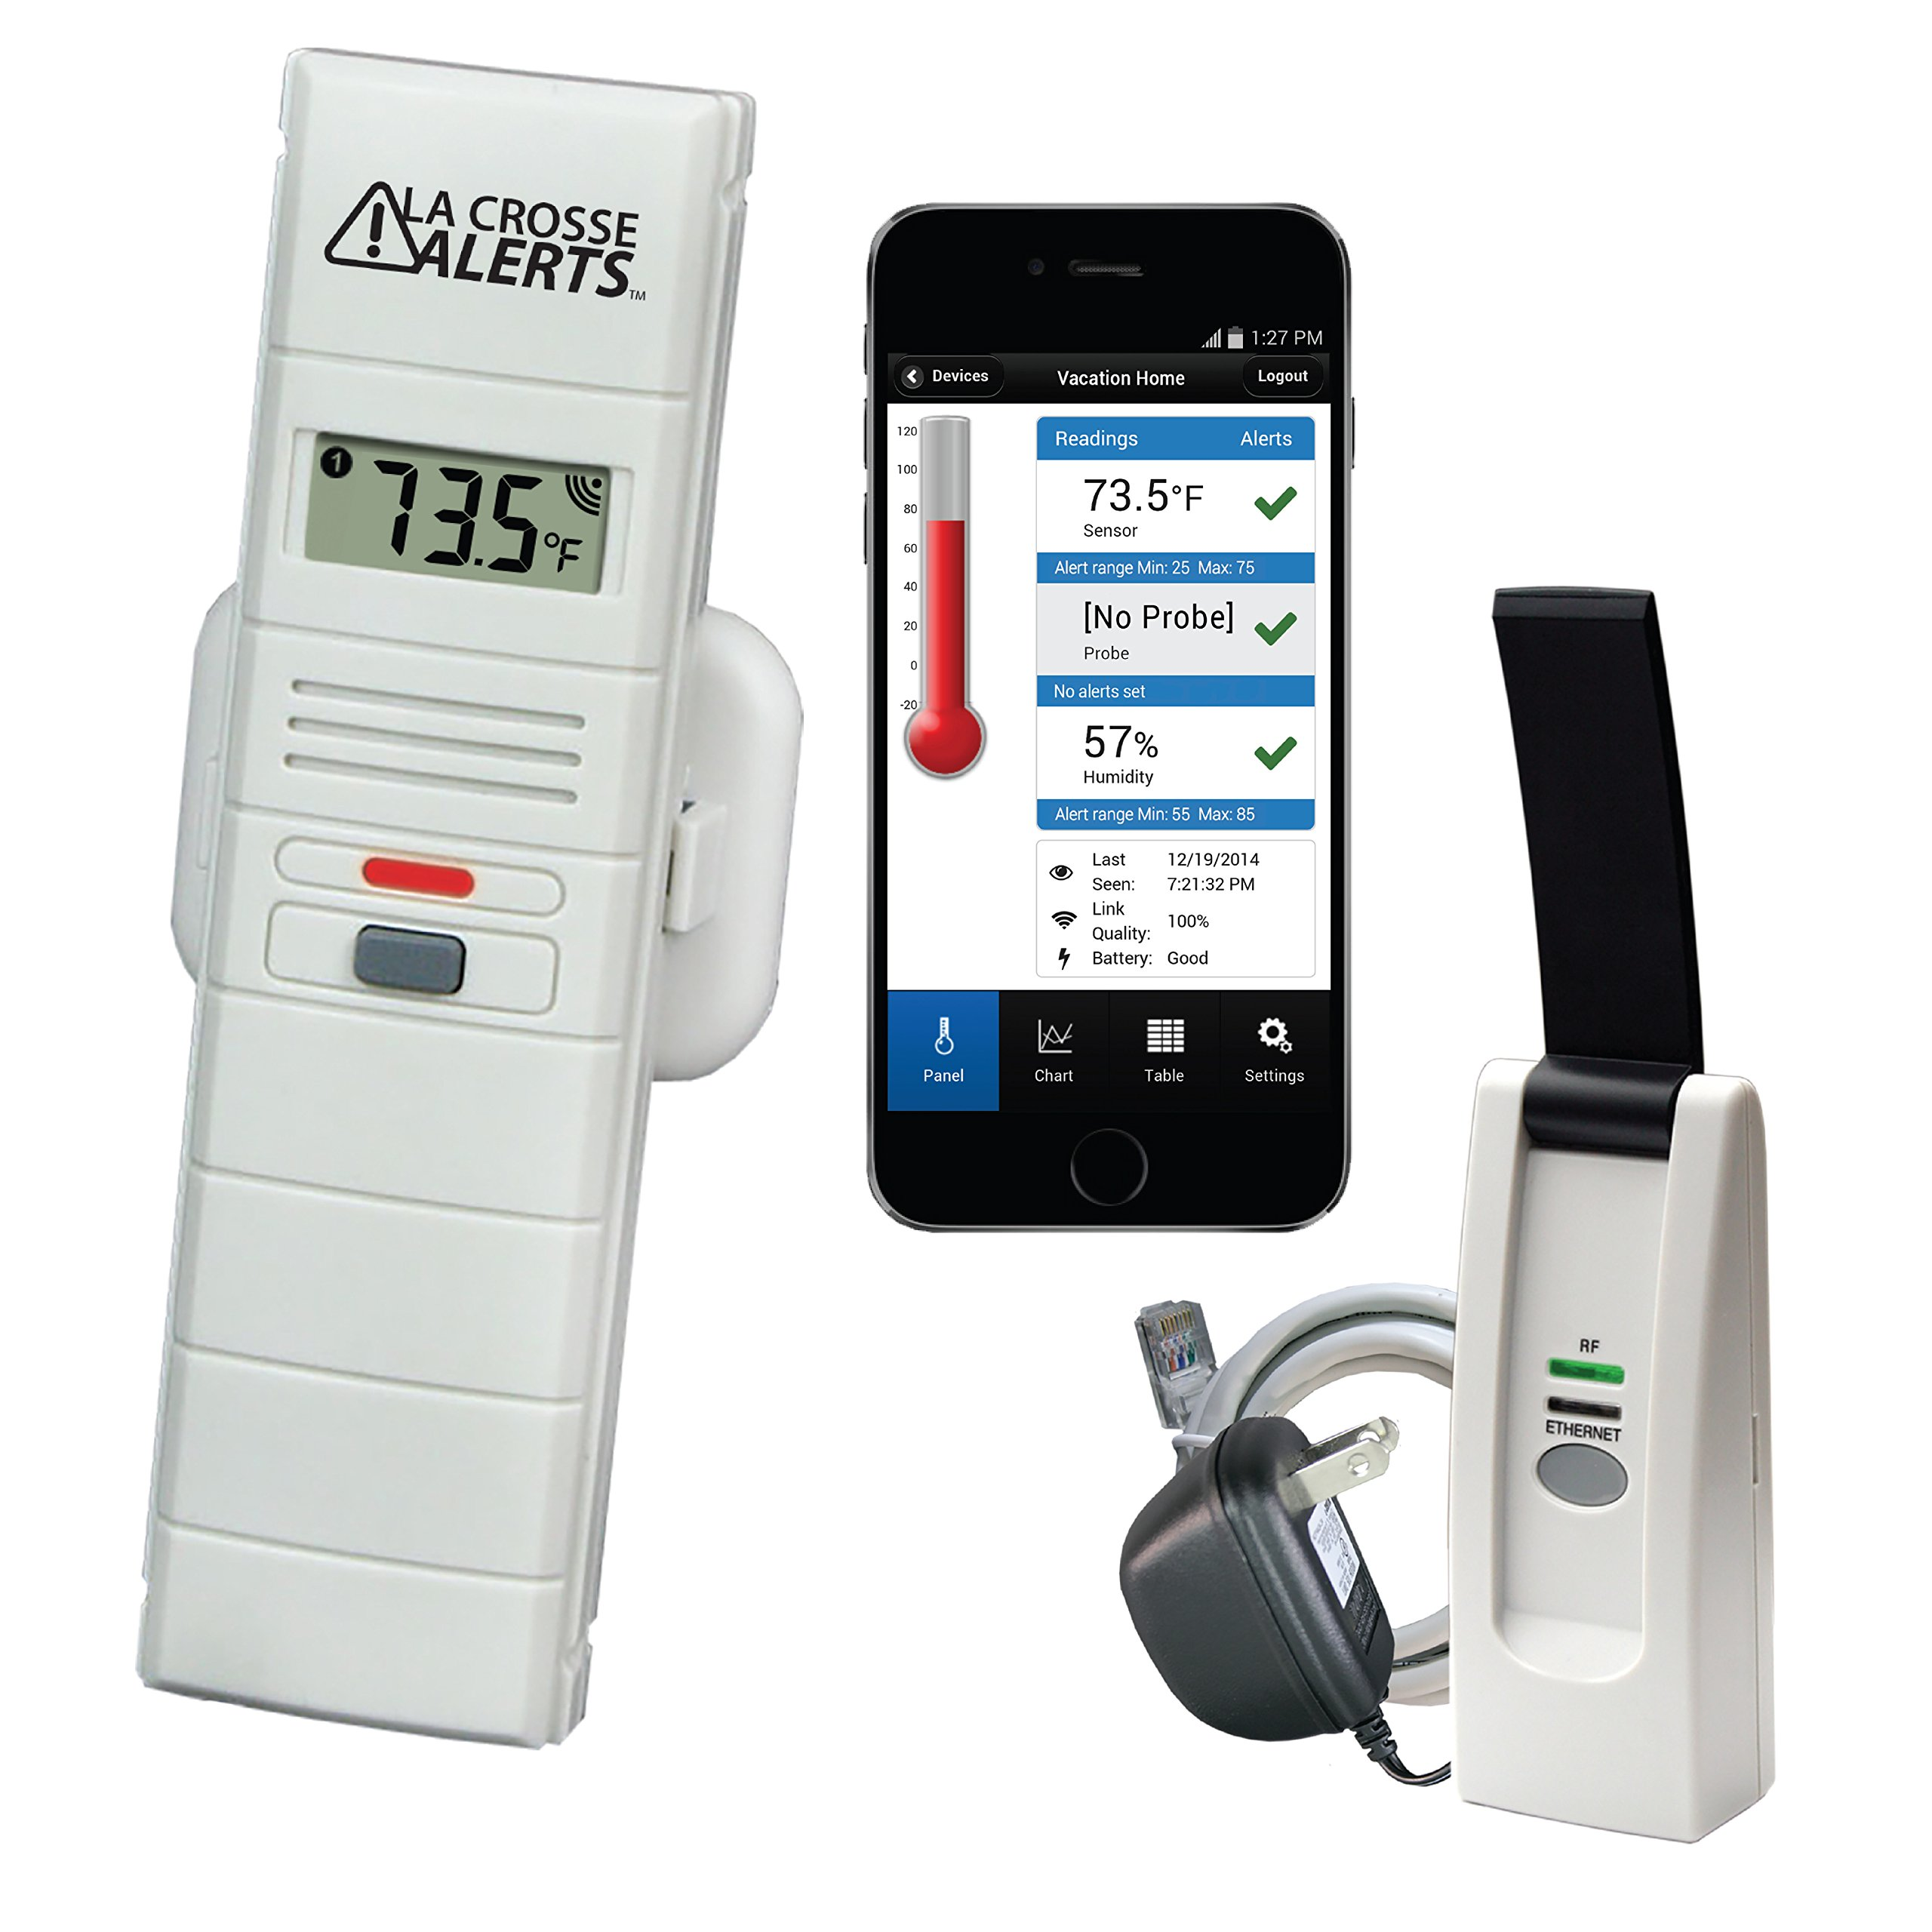 La Crosse Alerts Mobile 926-25100-WGB Wireless Monitor System with Temperature & Humidity by La Crosse Technology